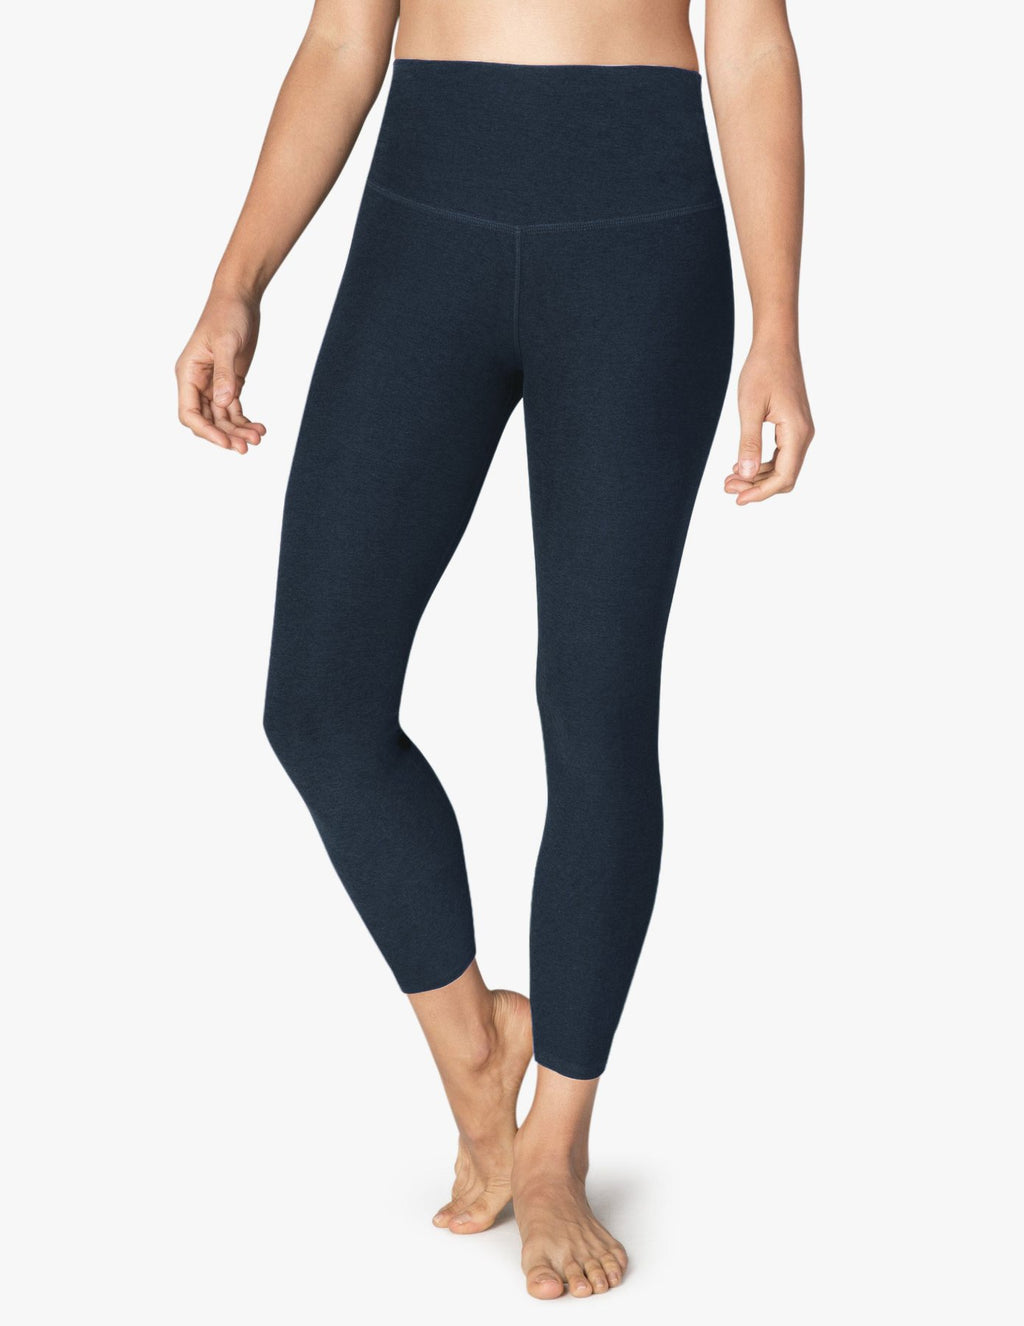 Beyond Yoga Space-Dye High-Waisted Midi Legging - gilt+gossamer